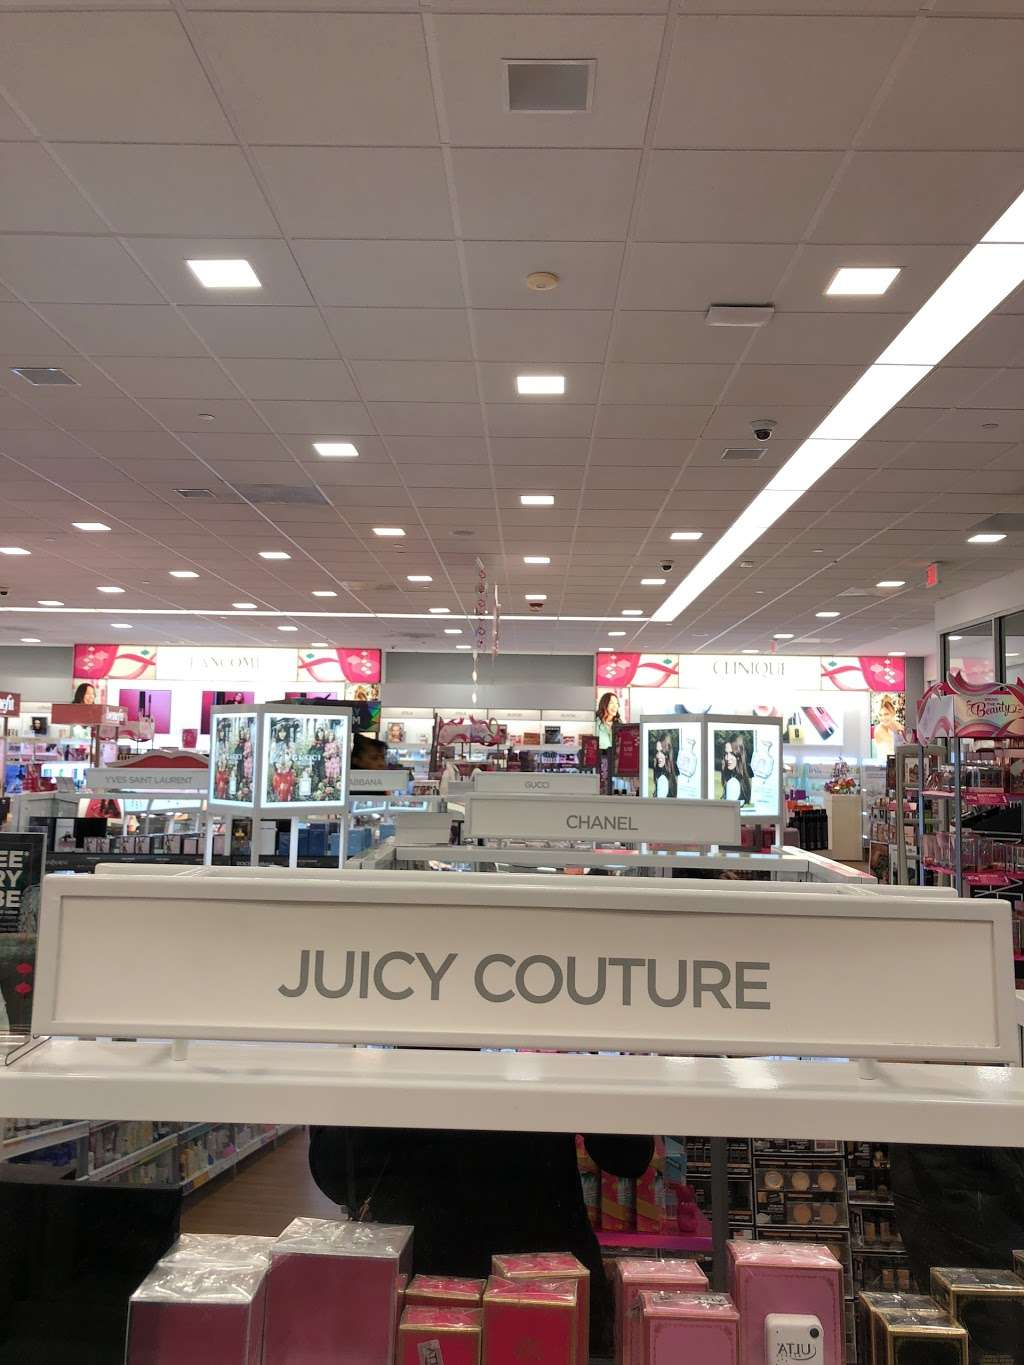 Ulta Beauty - hair care  | Photo 8 of 10 | Address: 225 Allwood Rd, Clifton, NJ 07012, USA | Phone: (973) 777-1066